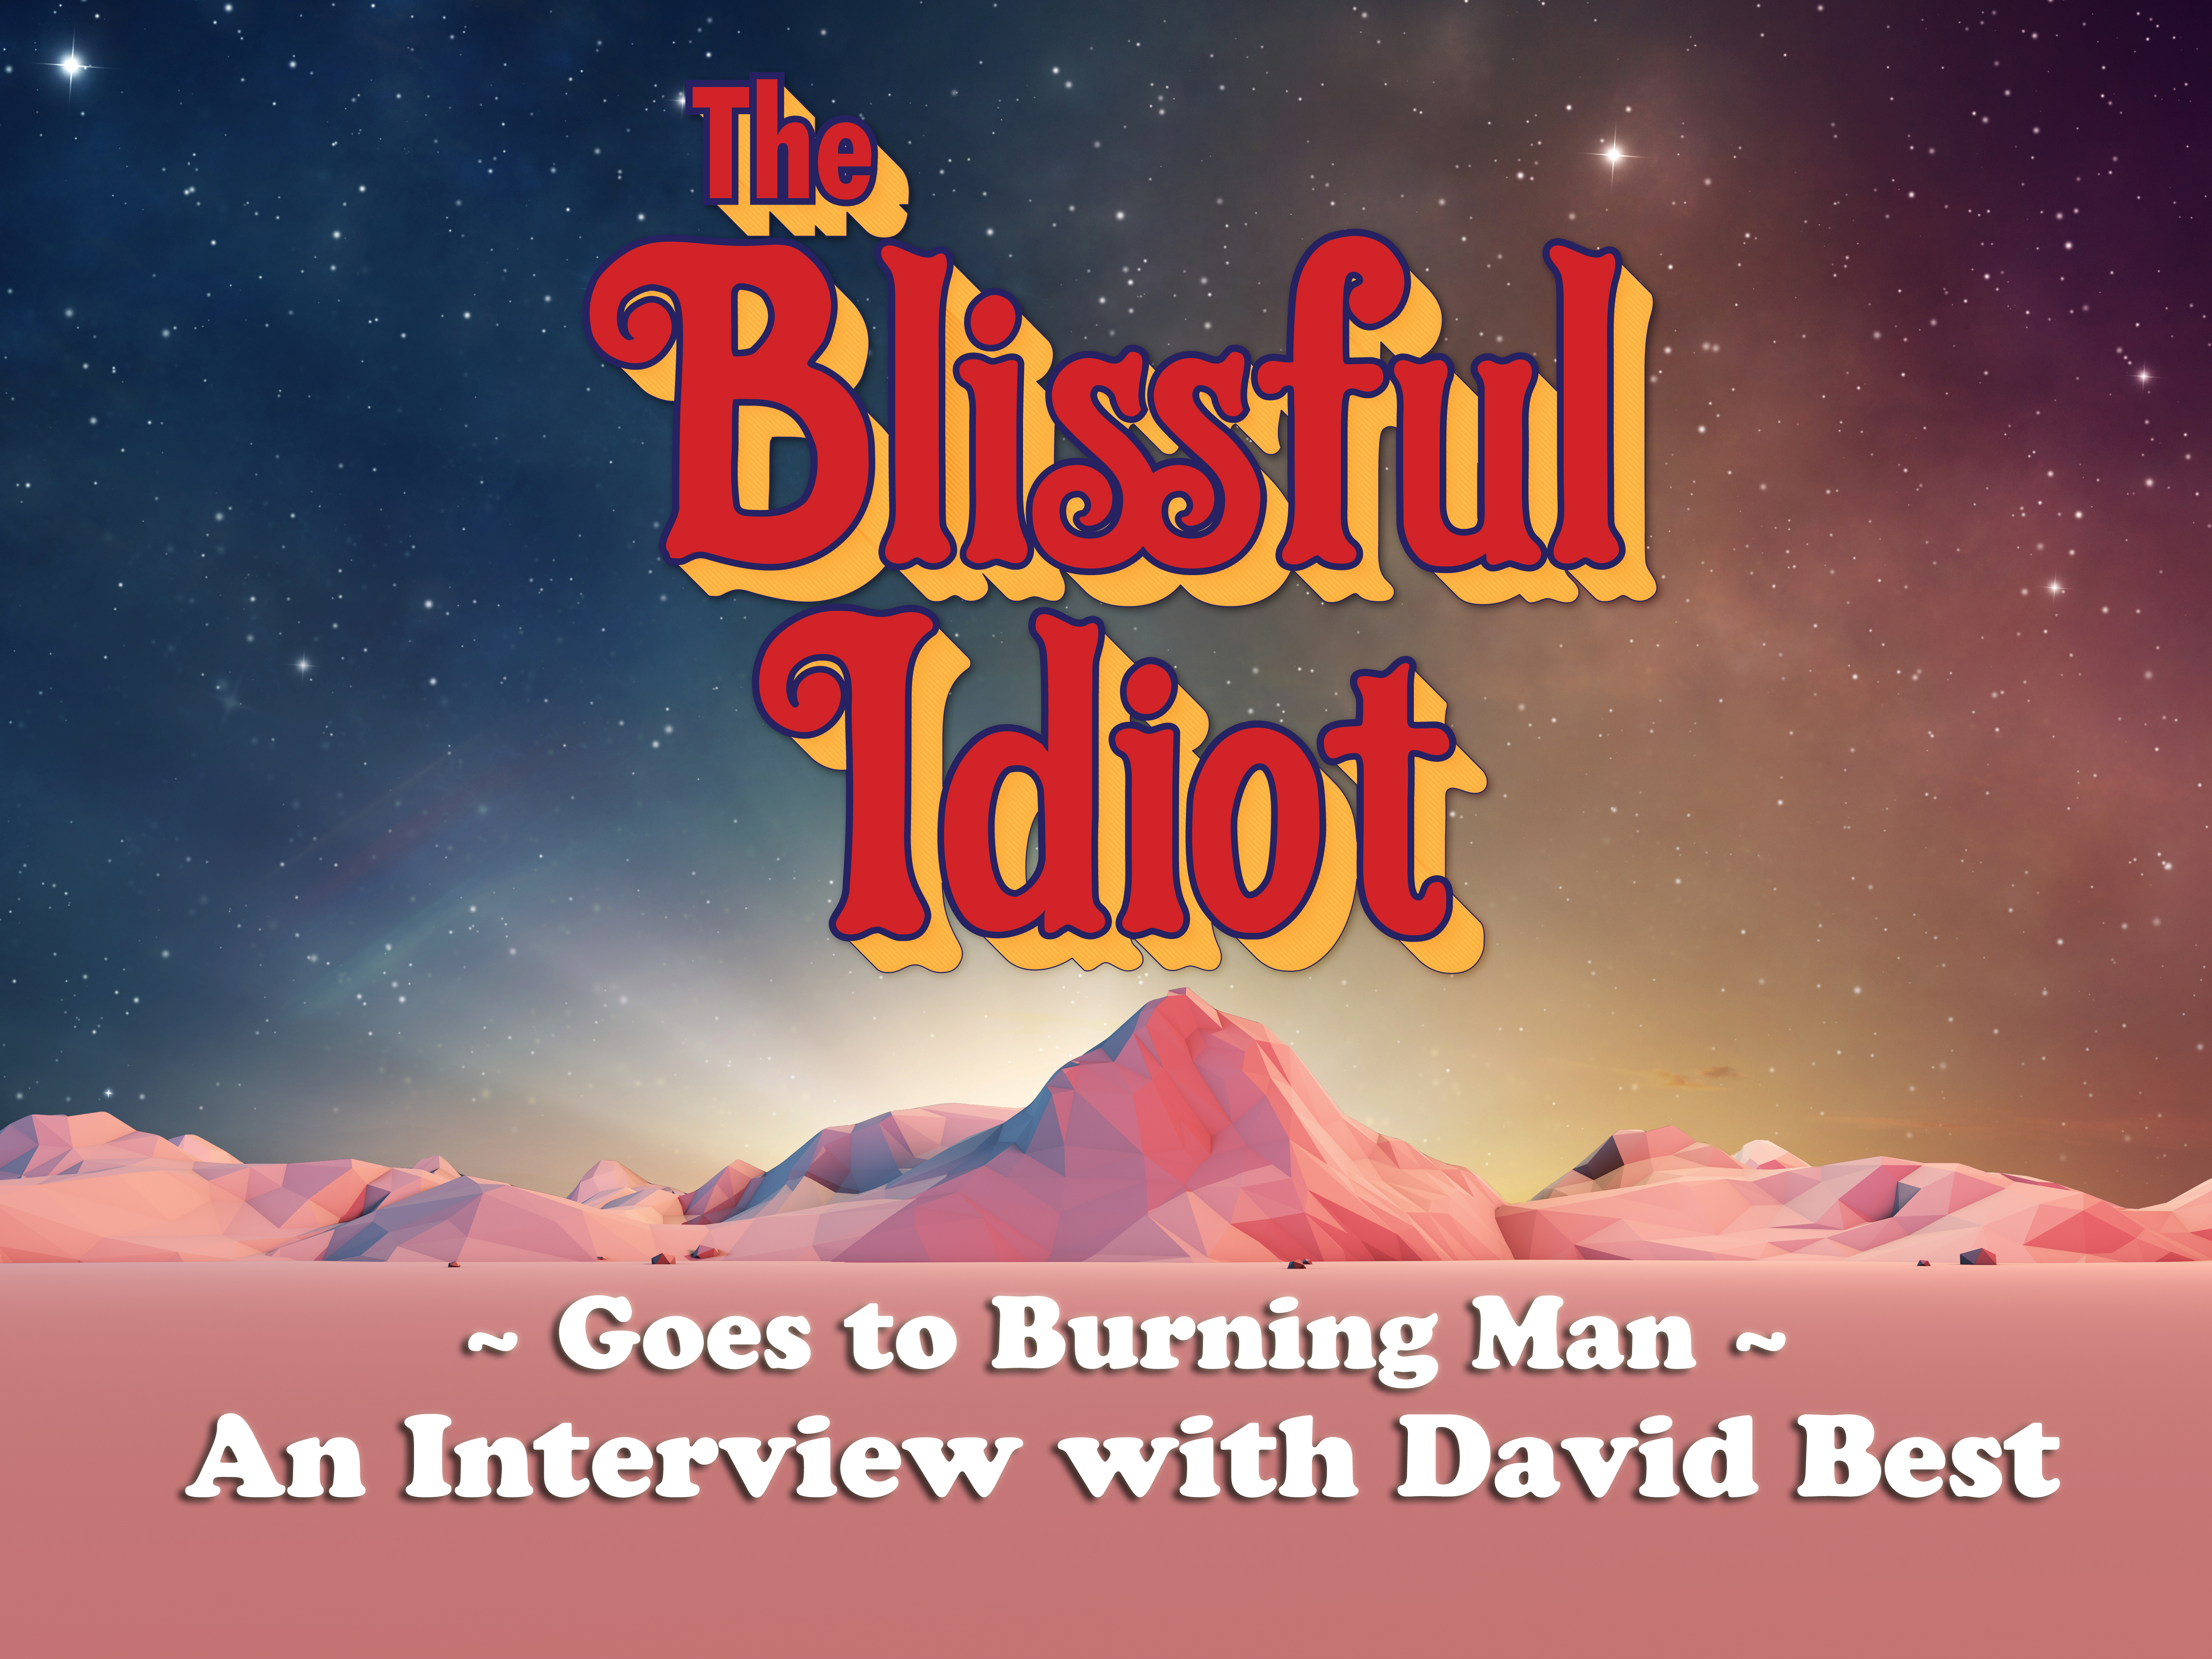 The Blissful Idiot goes to Burning Man: Vol. III/Episode 5 - An Interview with David Best (Side A) - LostinSound.org